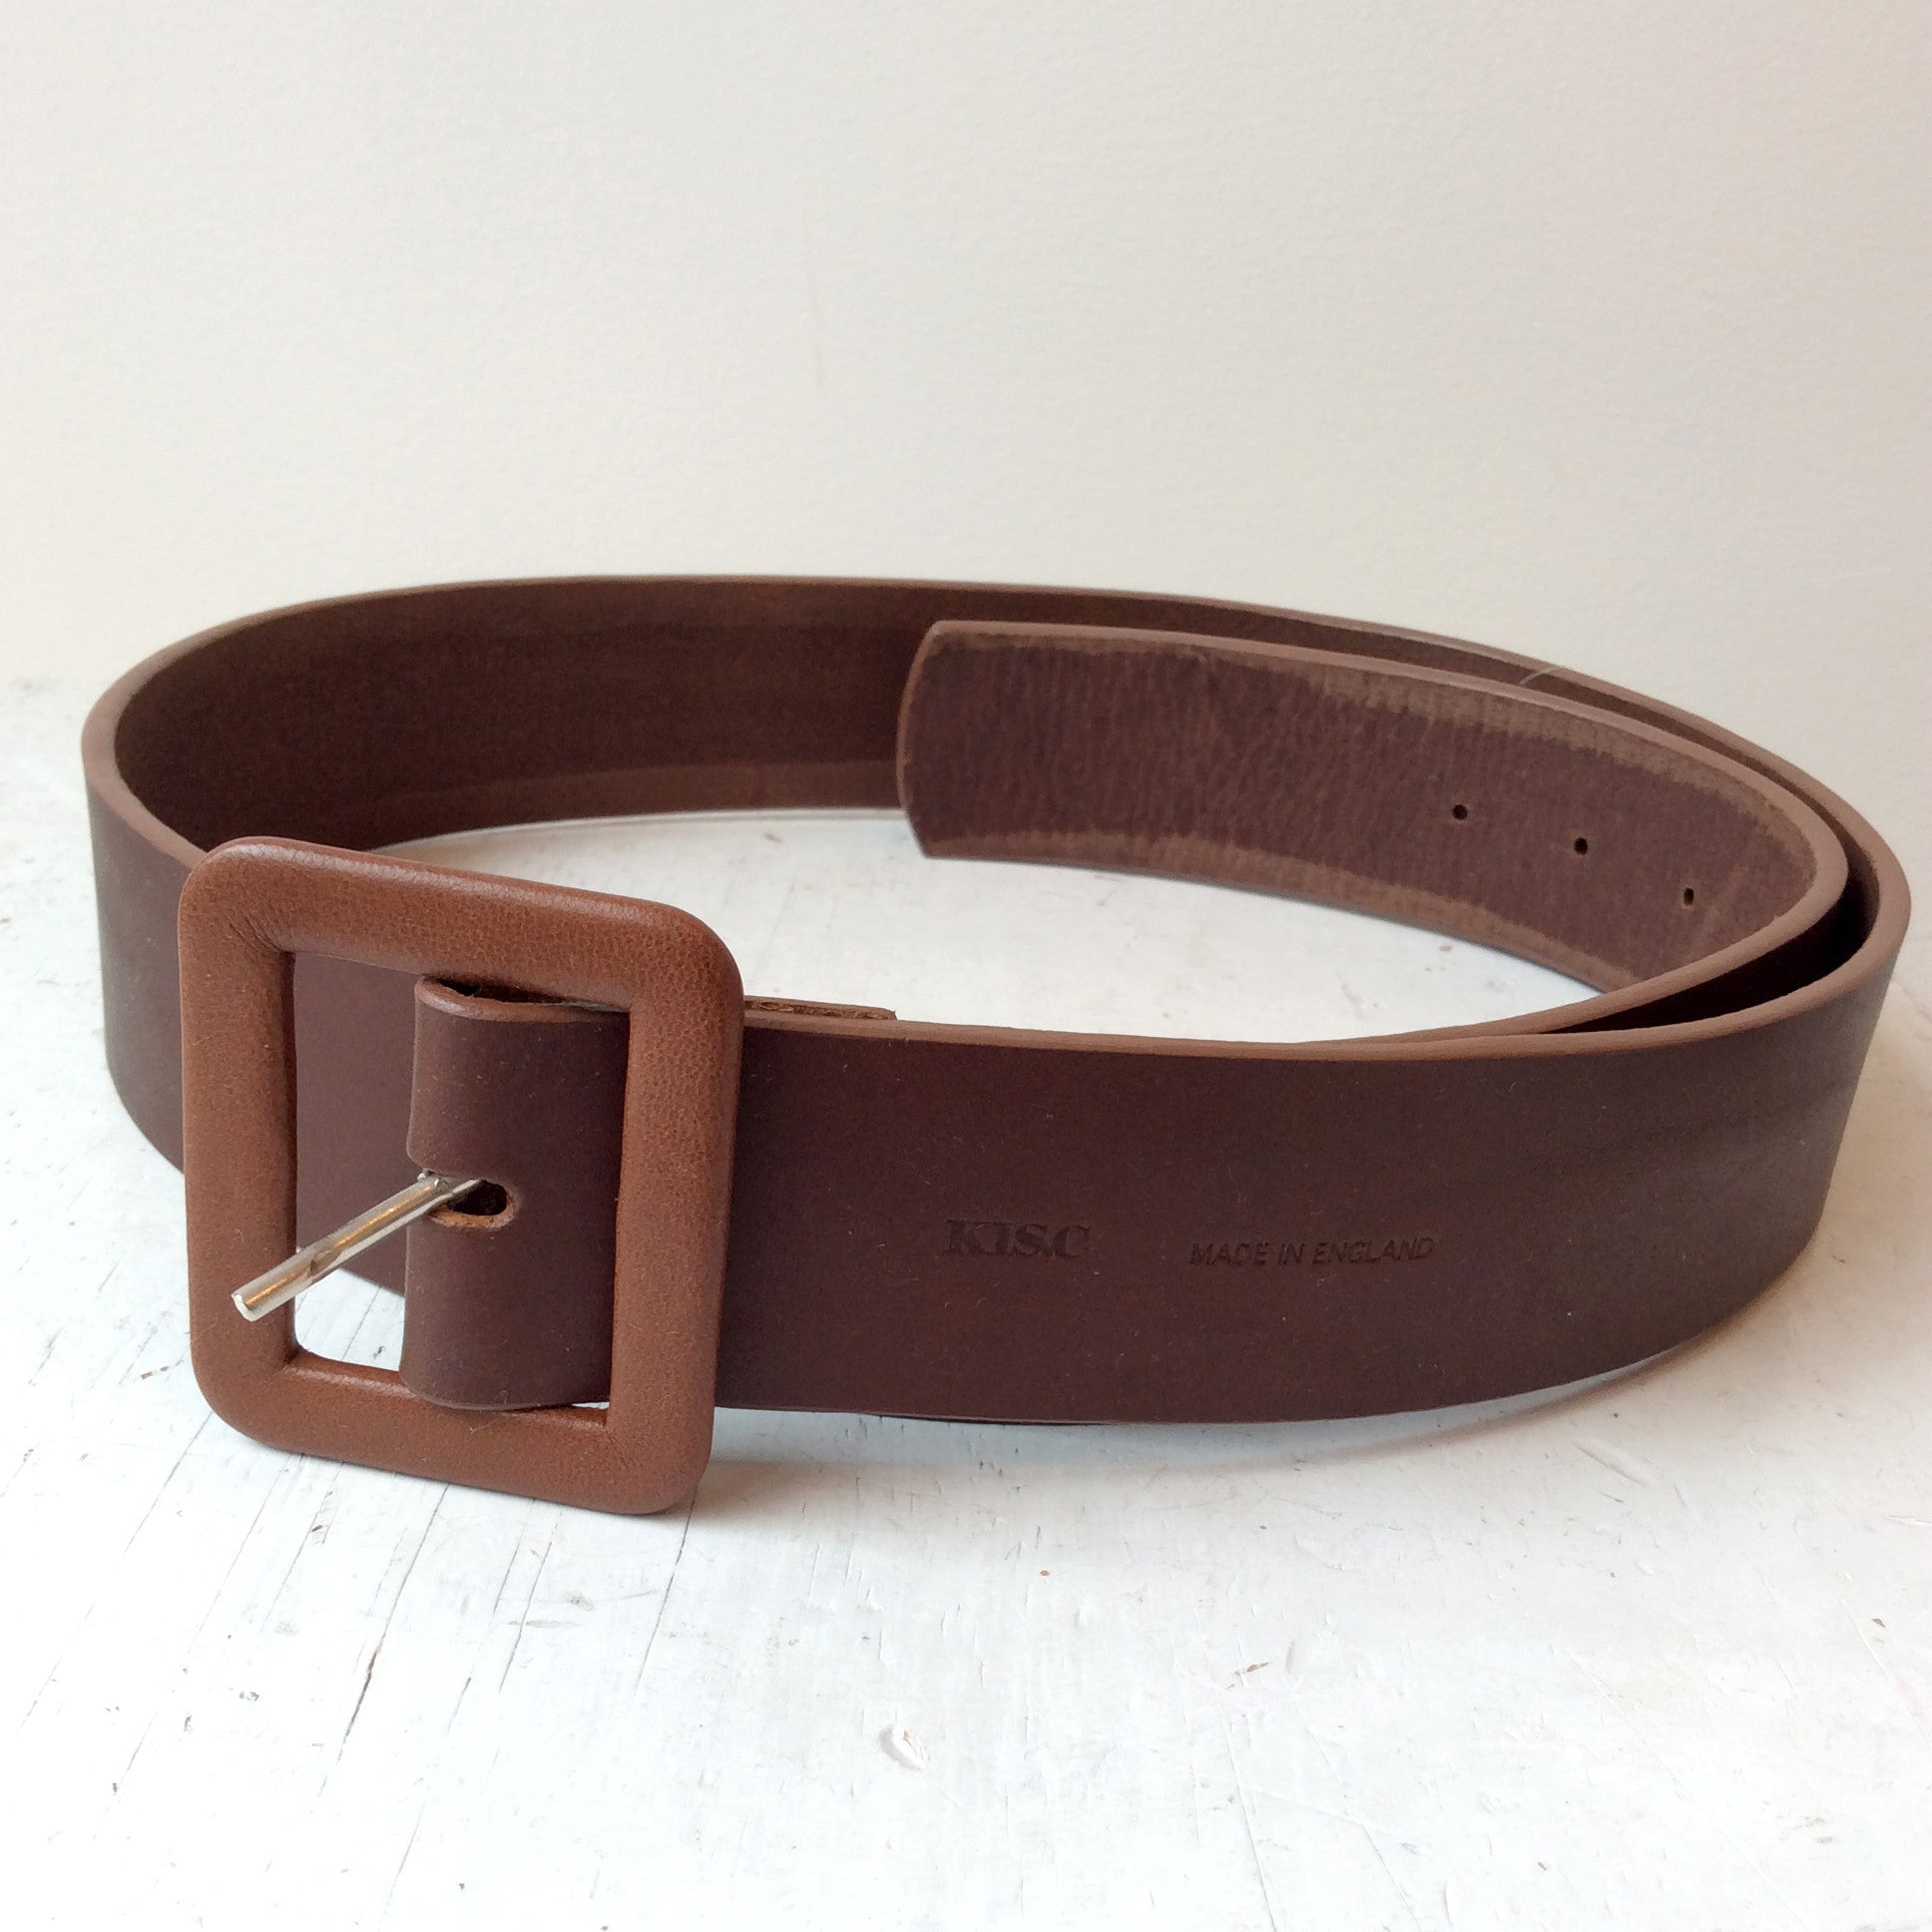 KIS,C WIDE BLACK LEATHER BELT